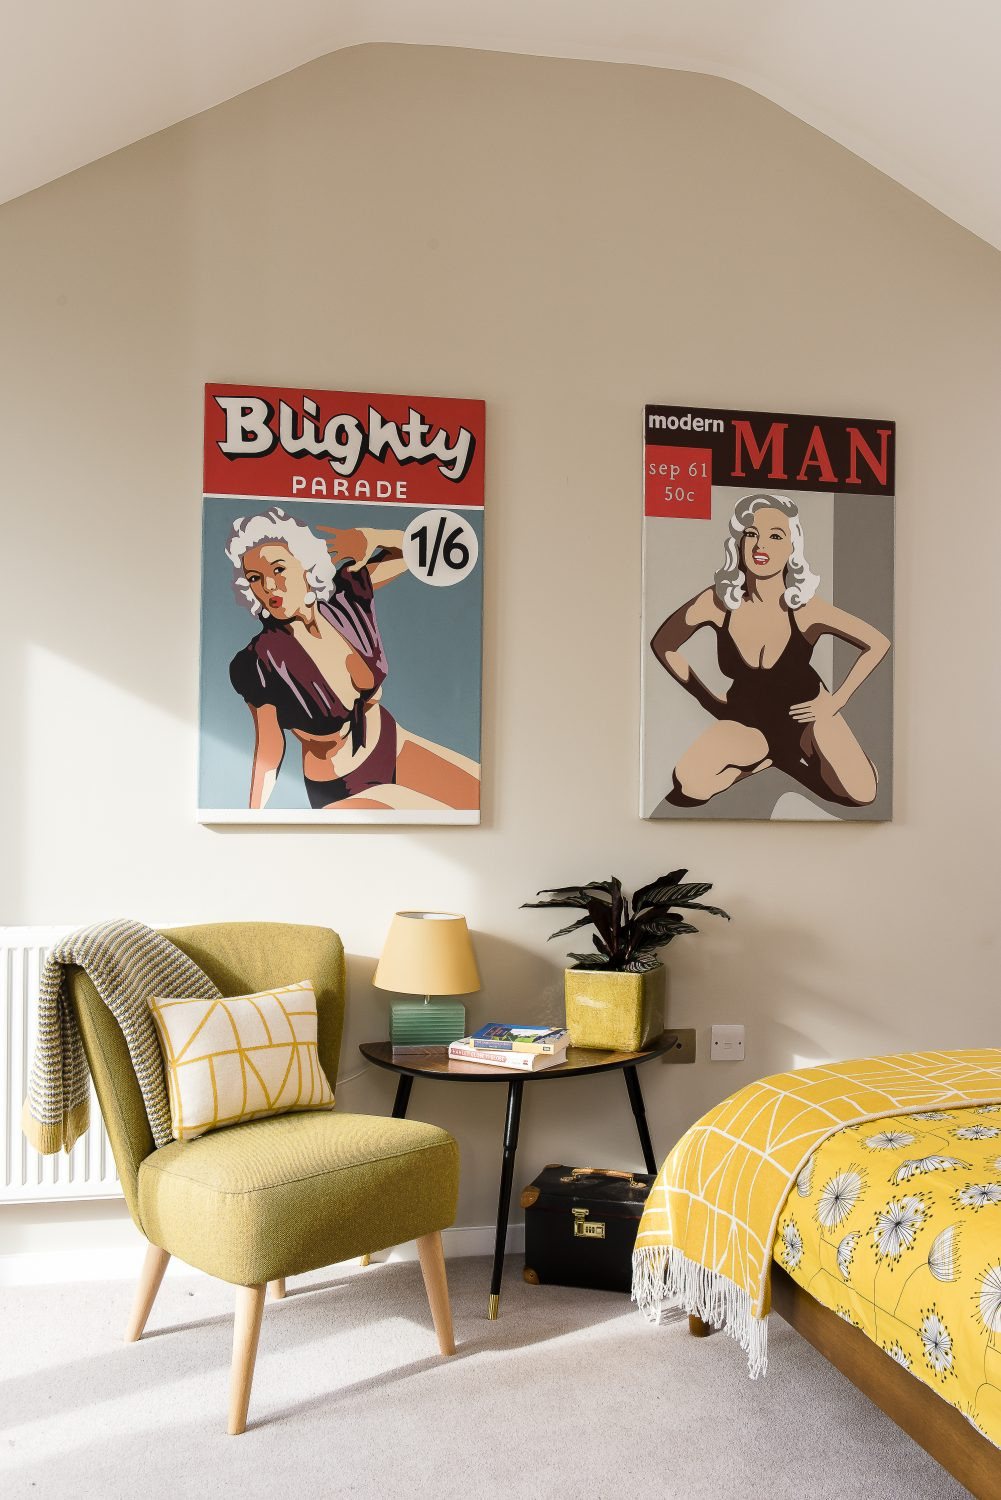 The 1950s magazine-inspired paintings in the master bedroom are by Julian St Clair